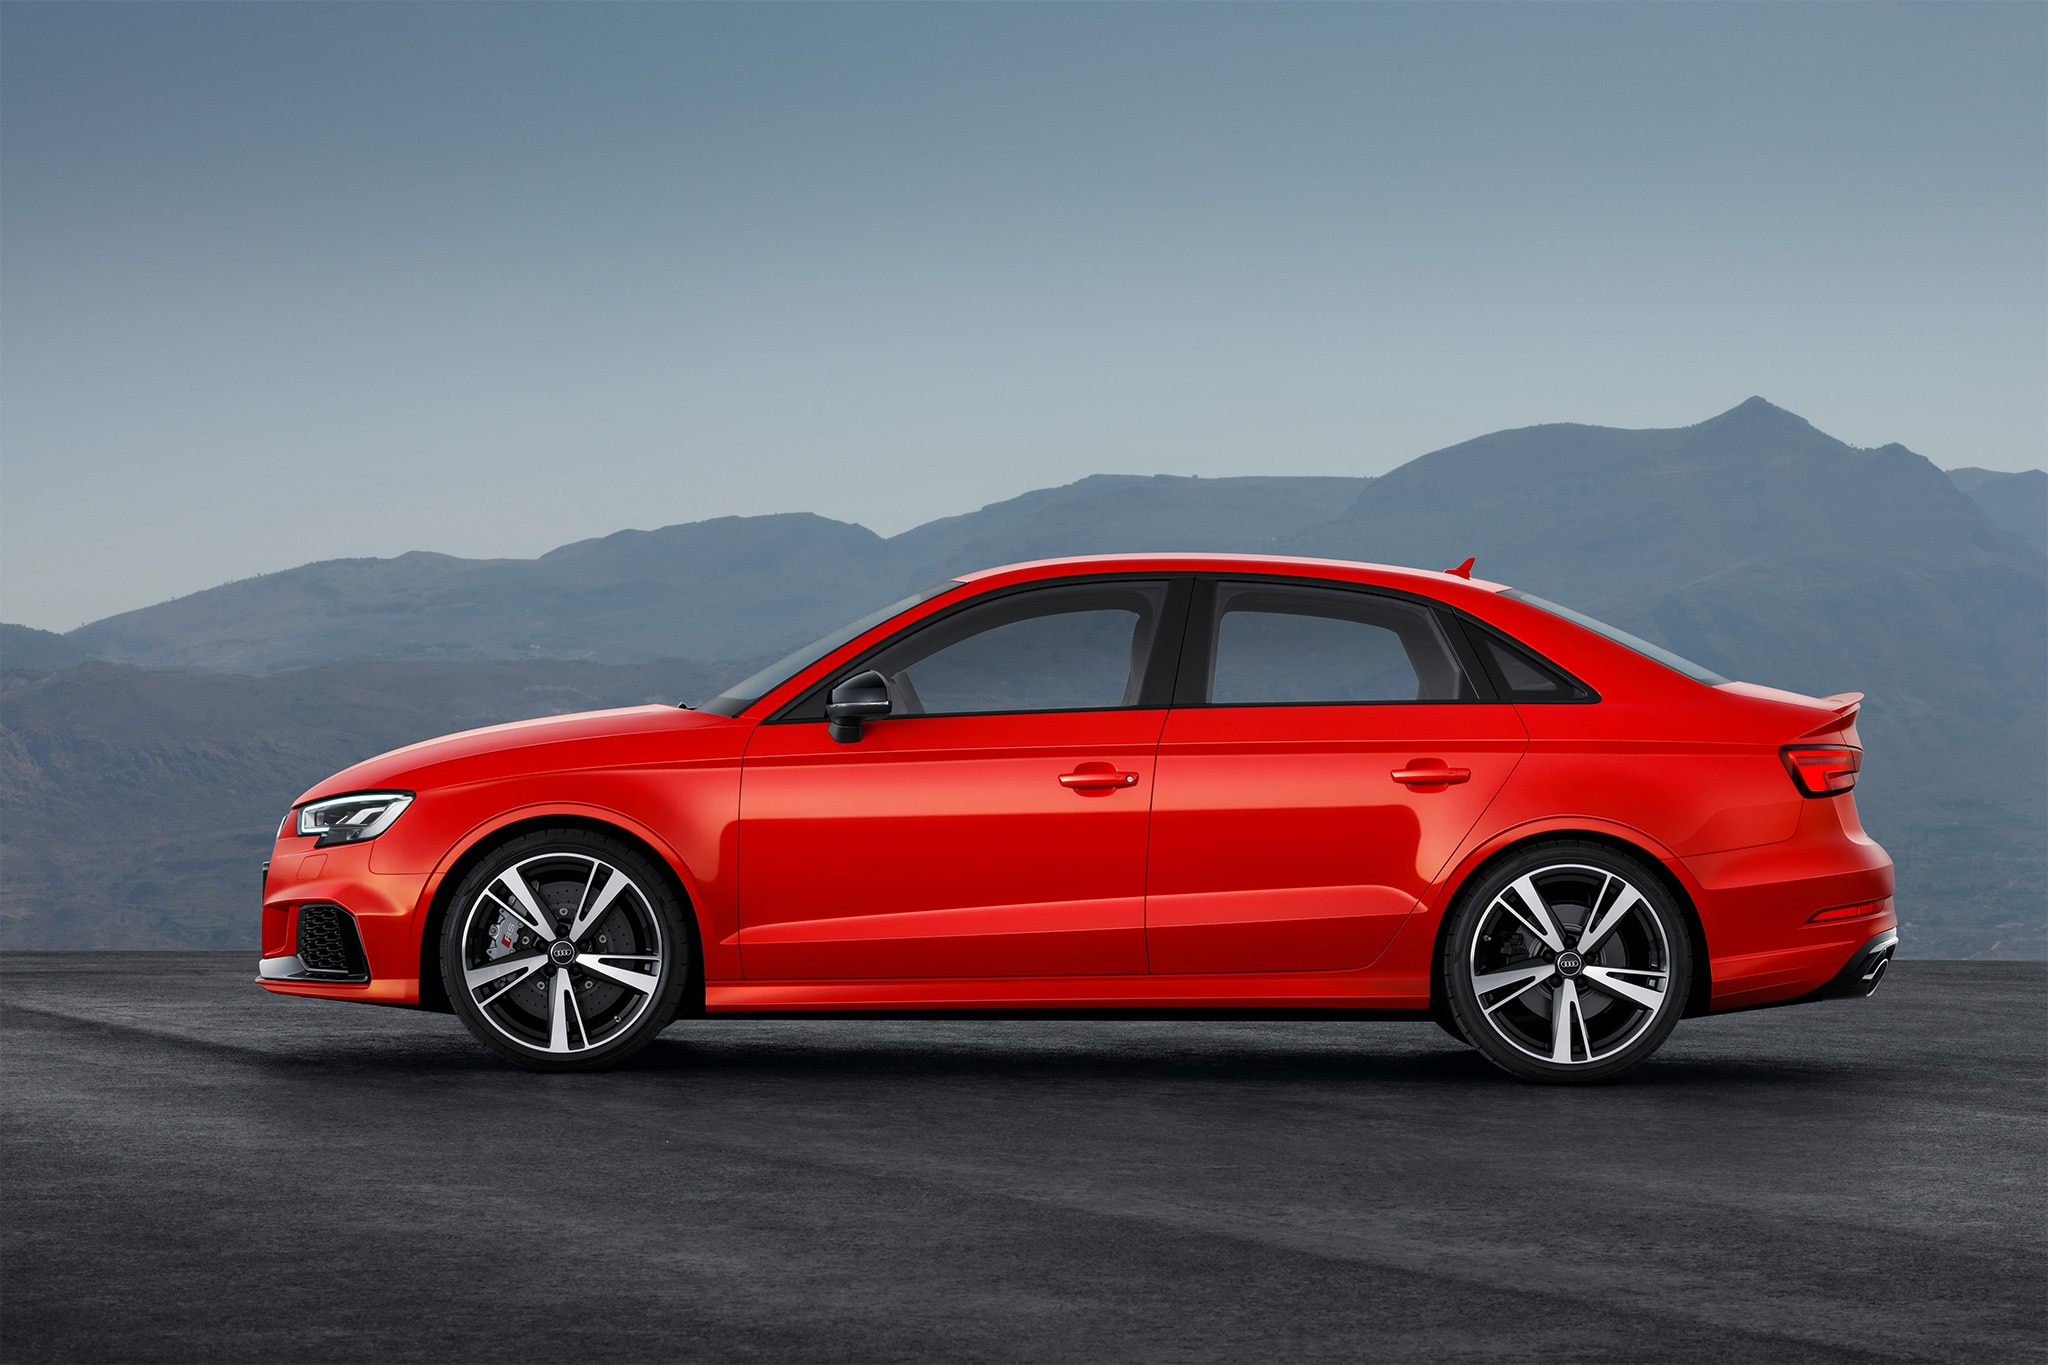 ... Things You Didn't Know About Audi RS3 2018 - Photos - Jeelda.com